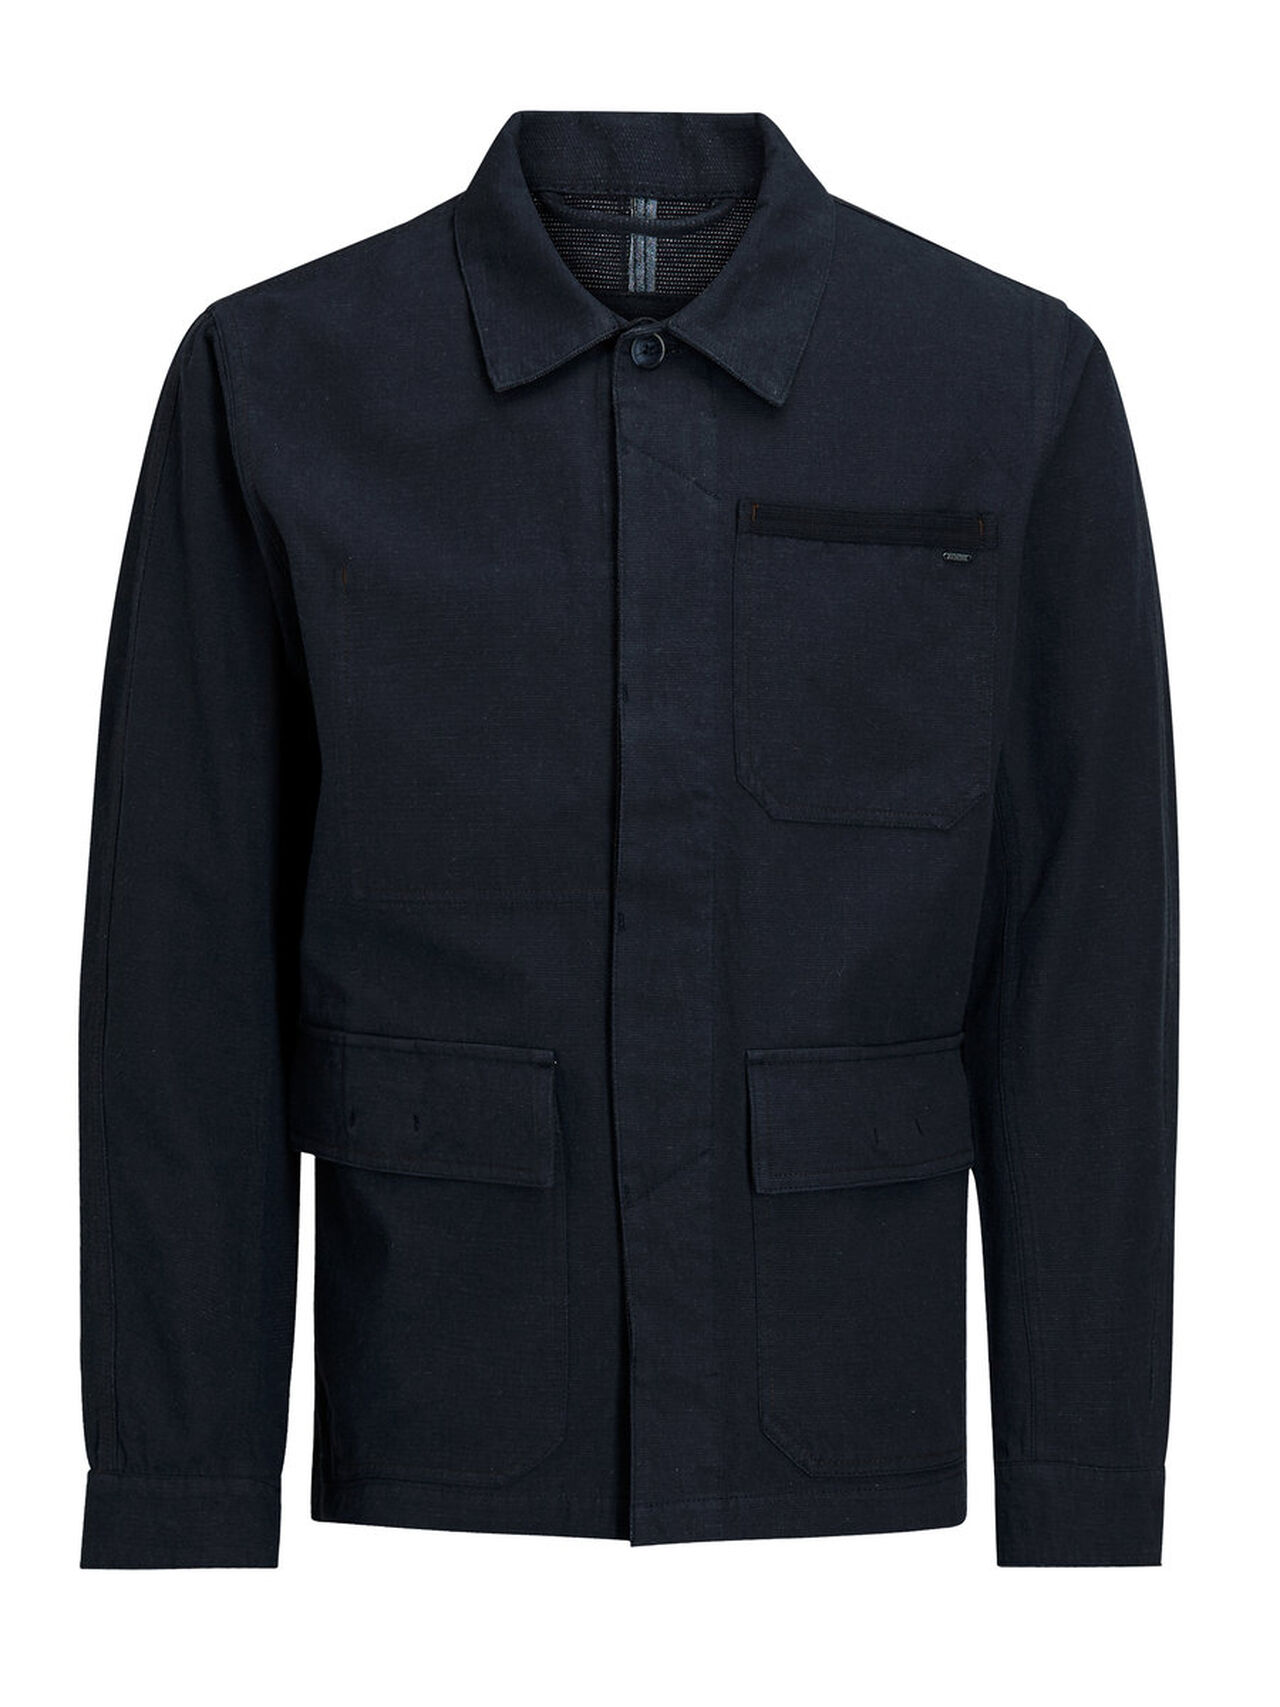 JACK & JONES Workwear Blazer Heren Blauw thumbnail